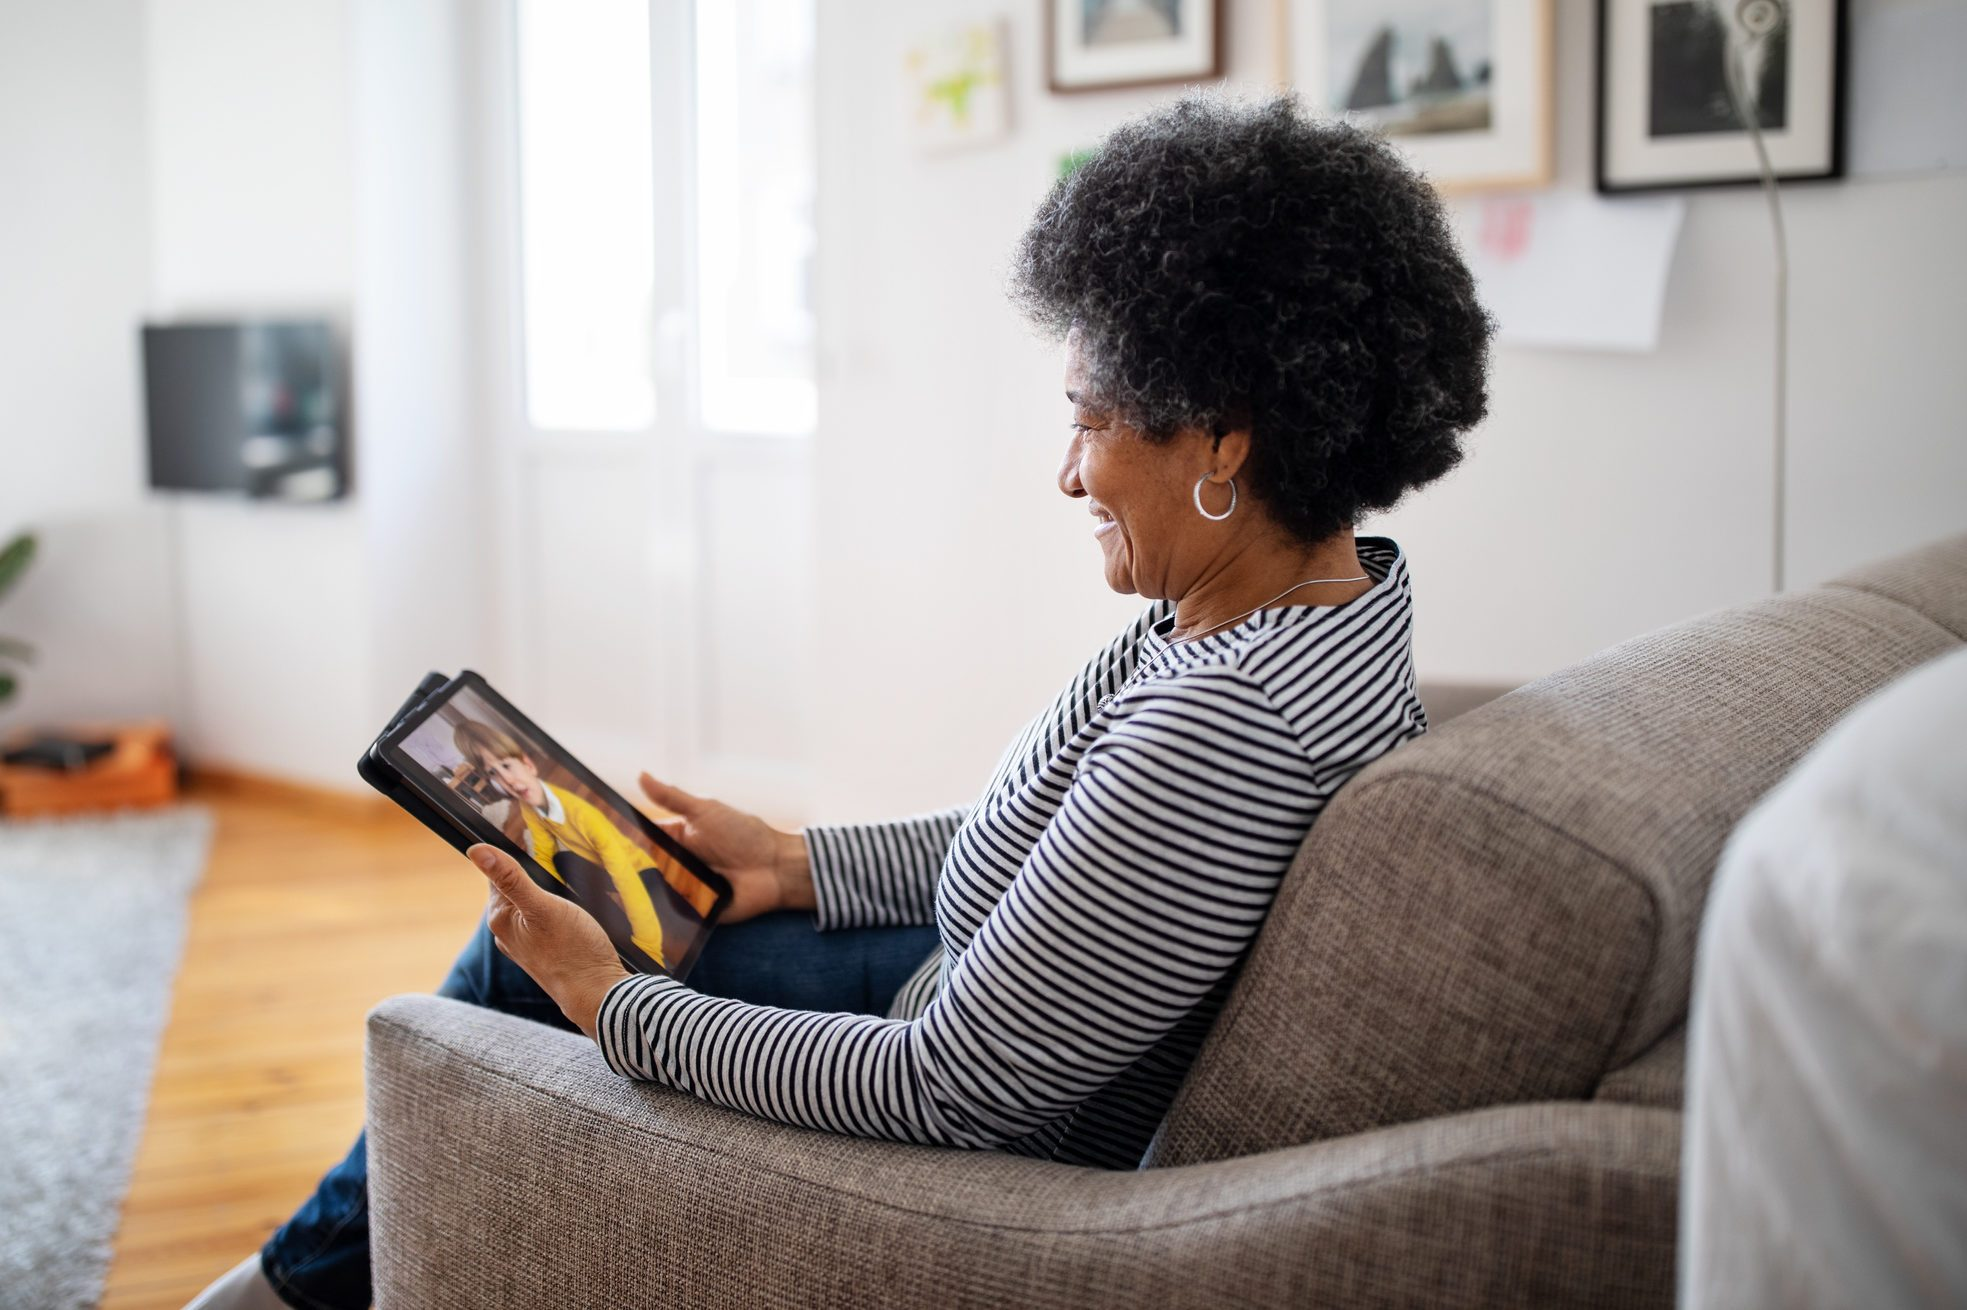 Mature woman having video call with family during covid-19 pandemic